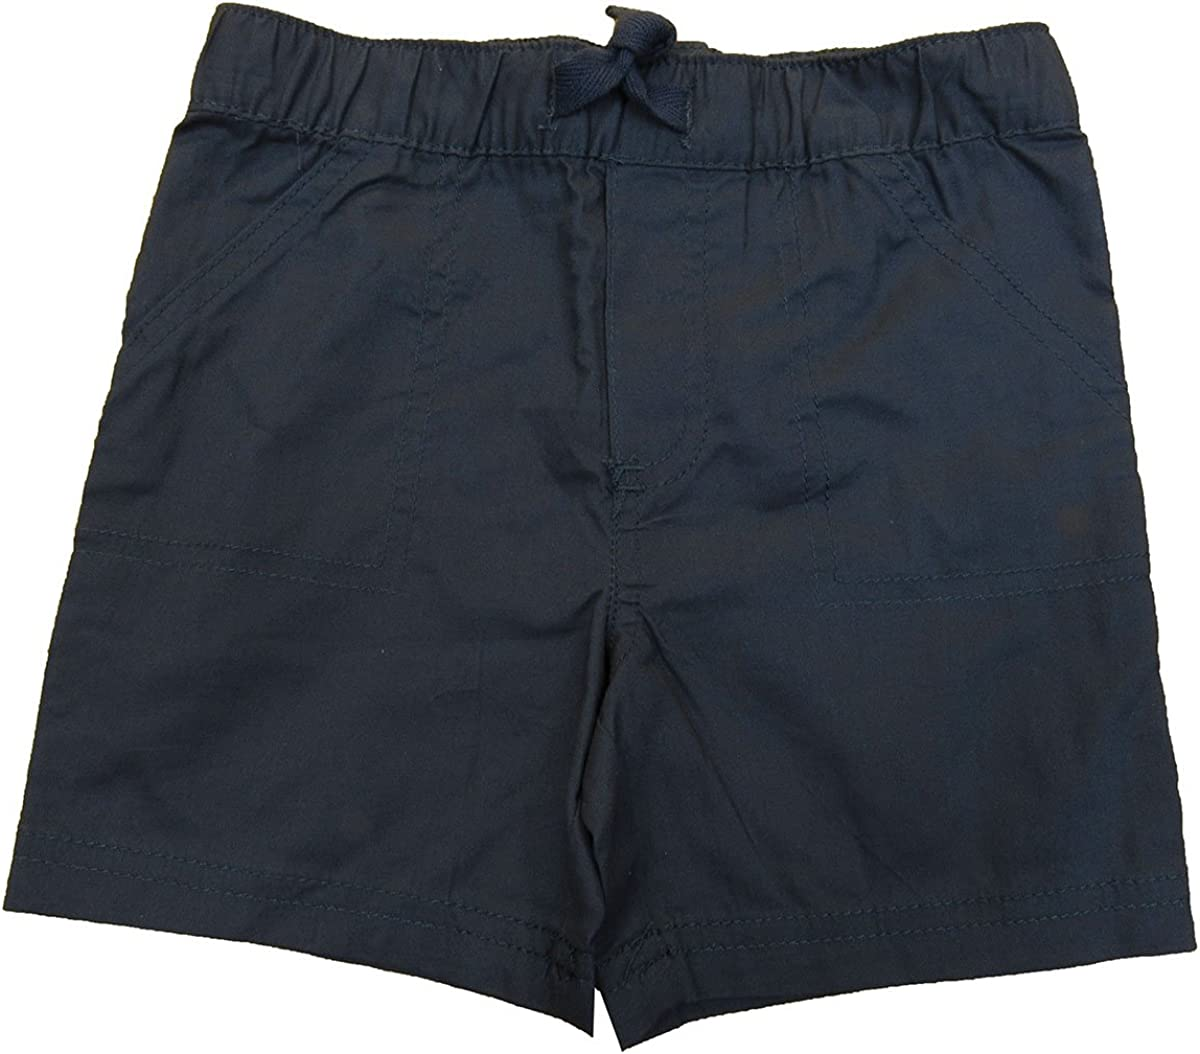 0-24 Months First Impressions Baby Boys Pull-on Shorts